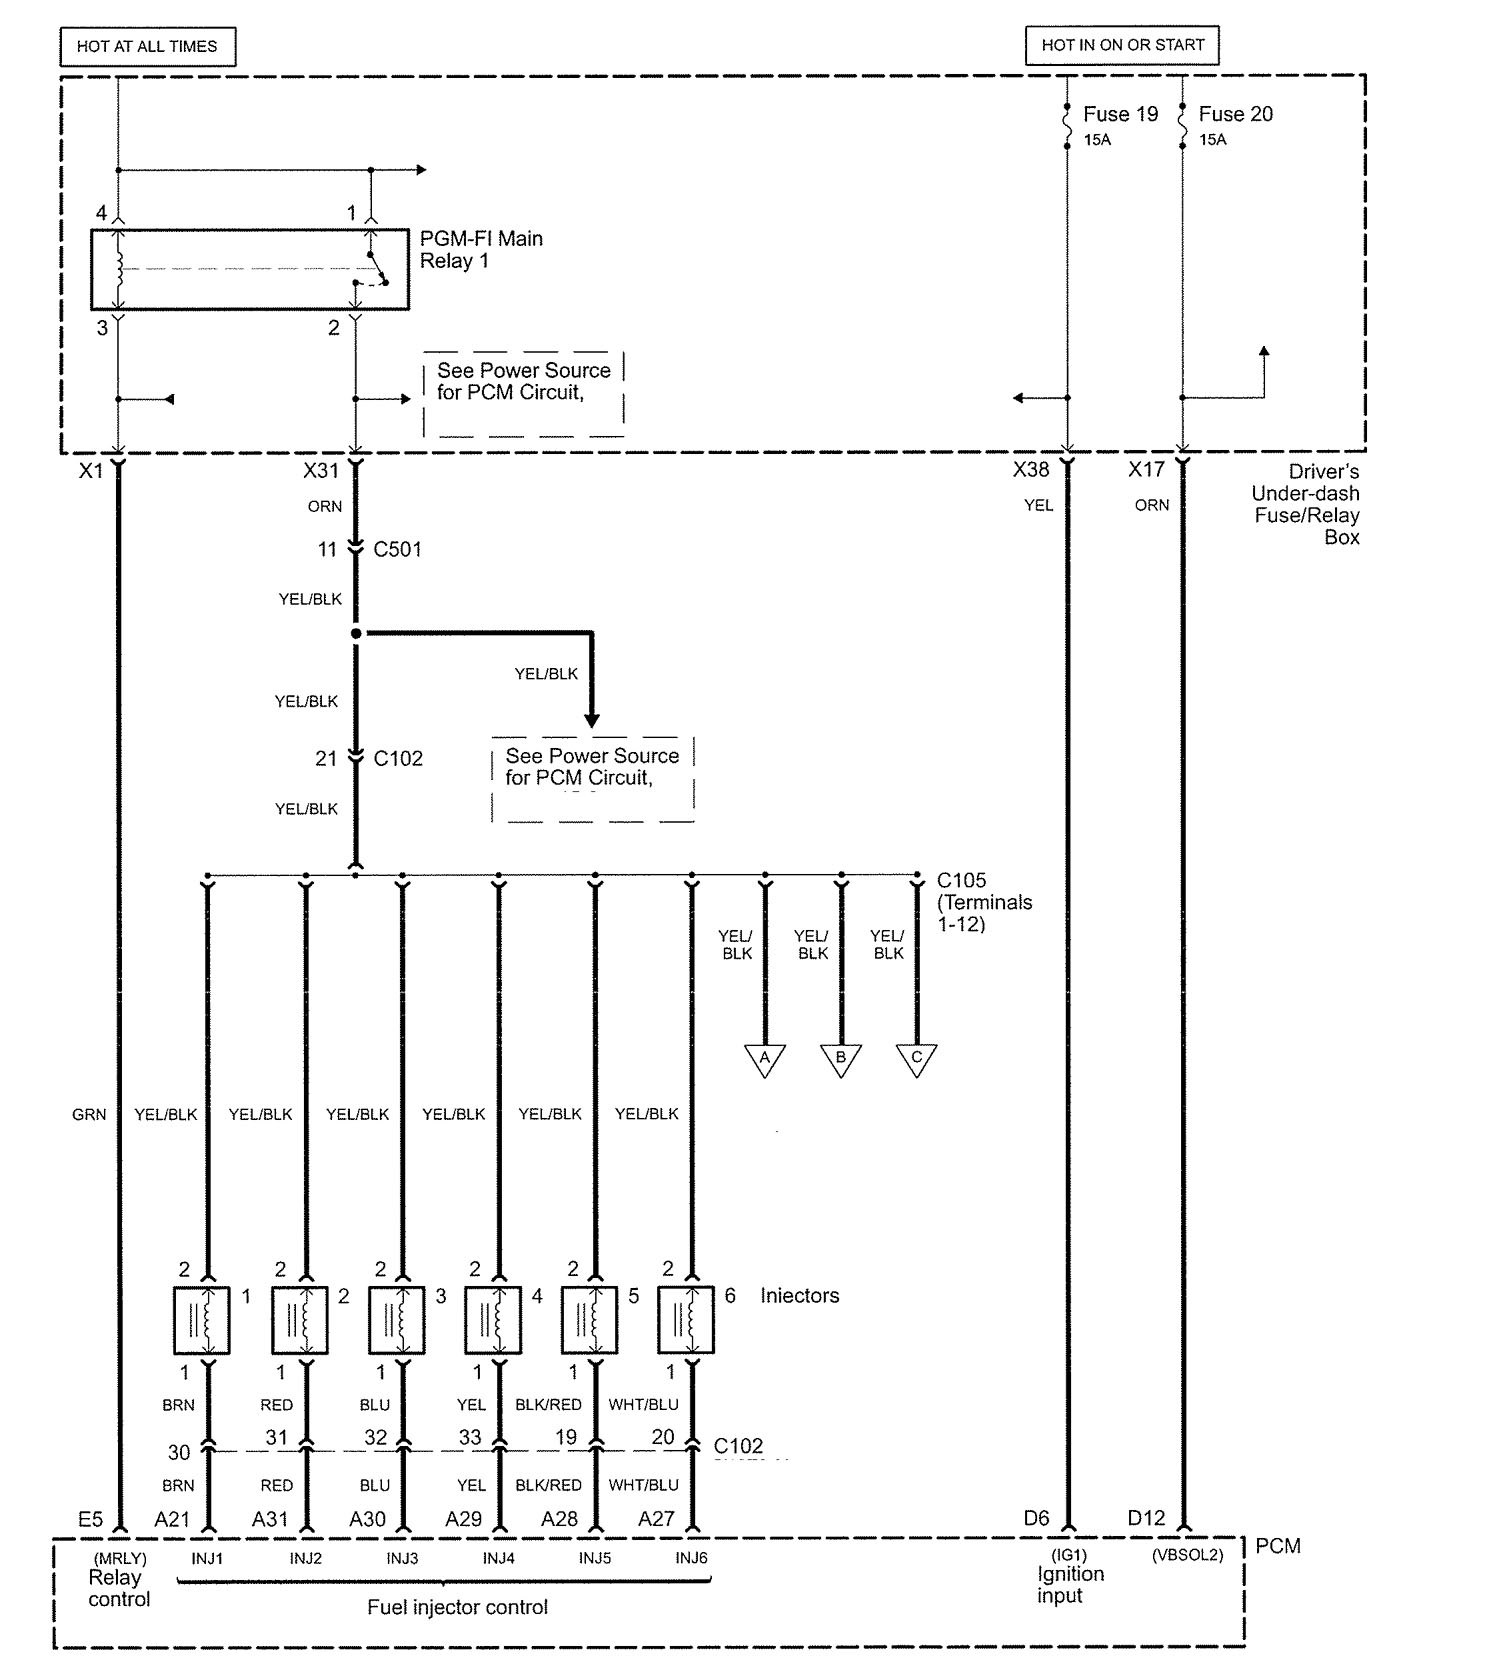 acura rl wiring diagram fuel controls v2 3 2005 acura rl (2006) wiring diagrams fuel controls carknowledge Trailer Wiring Diagram at edmiracle.co